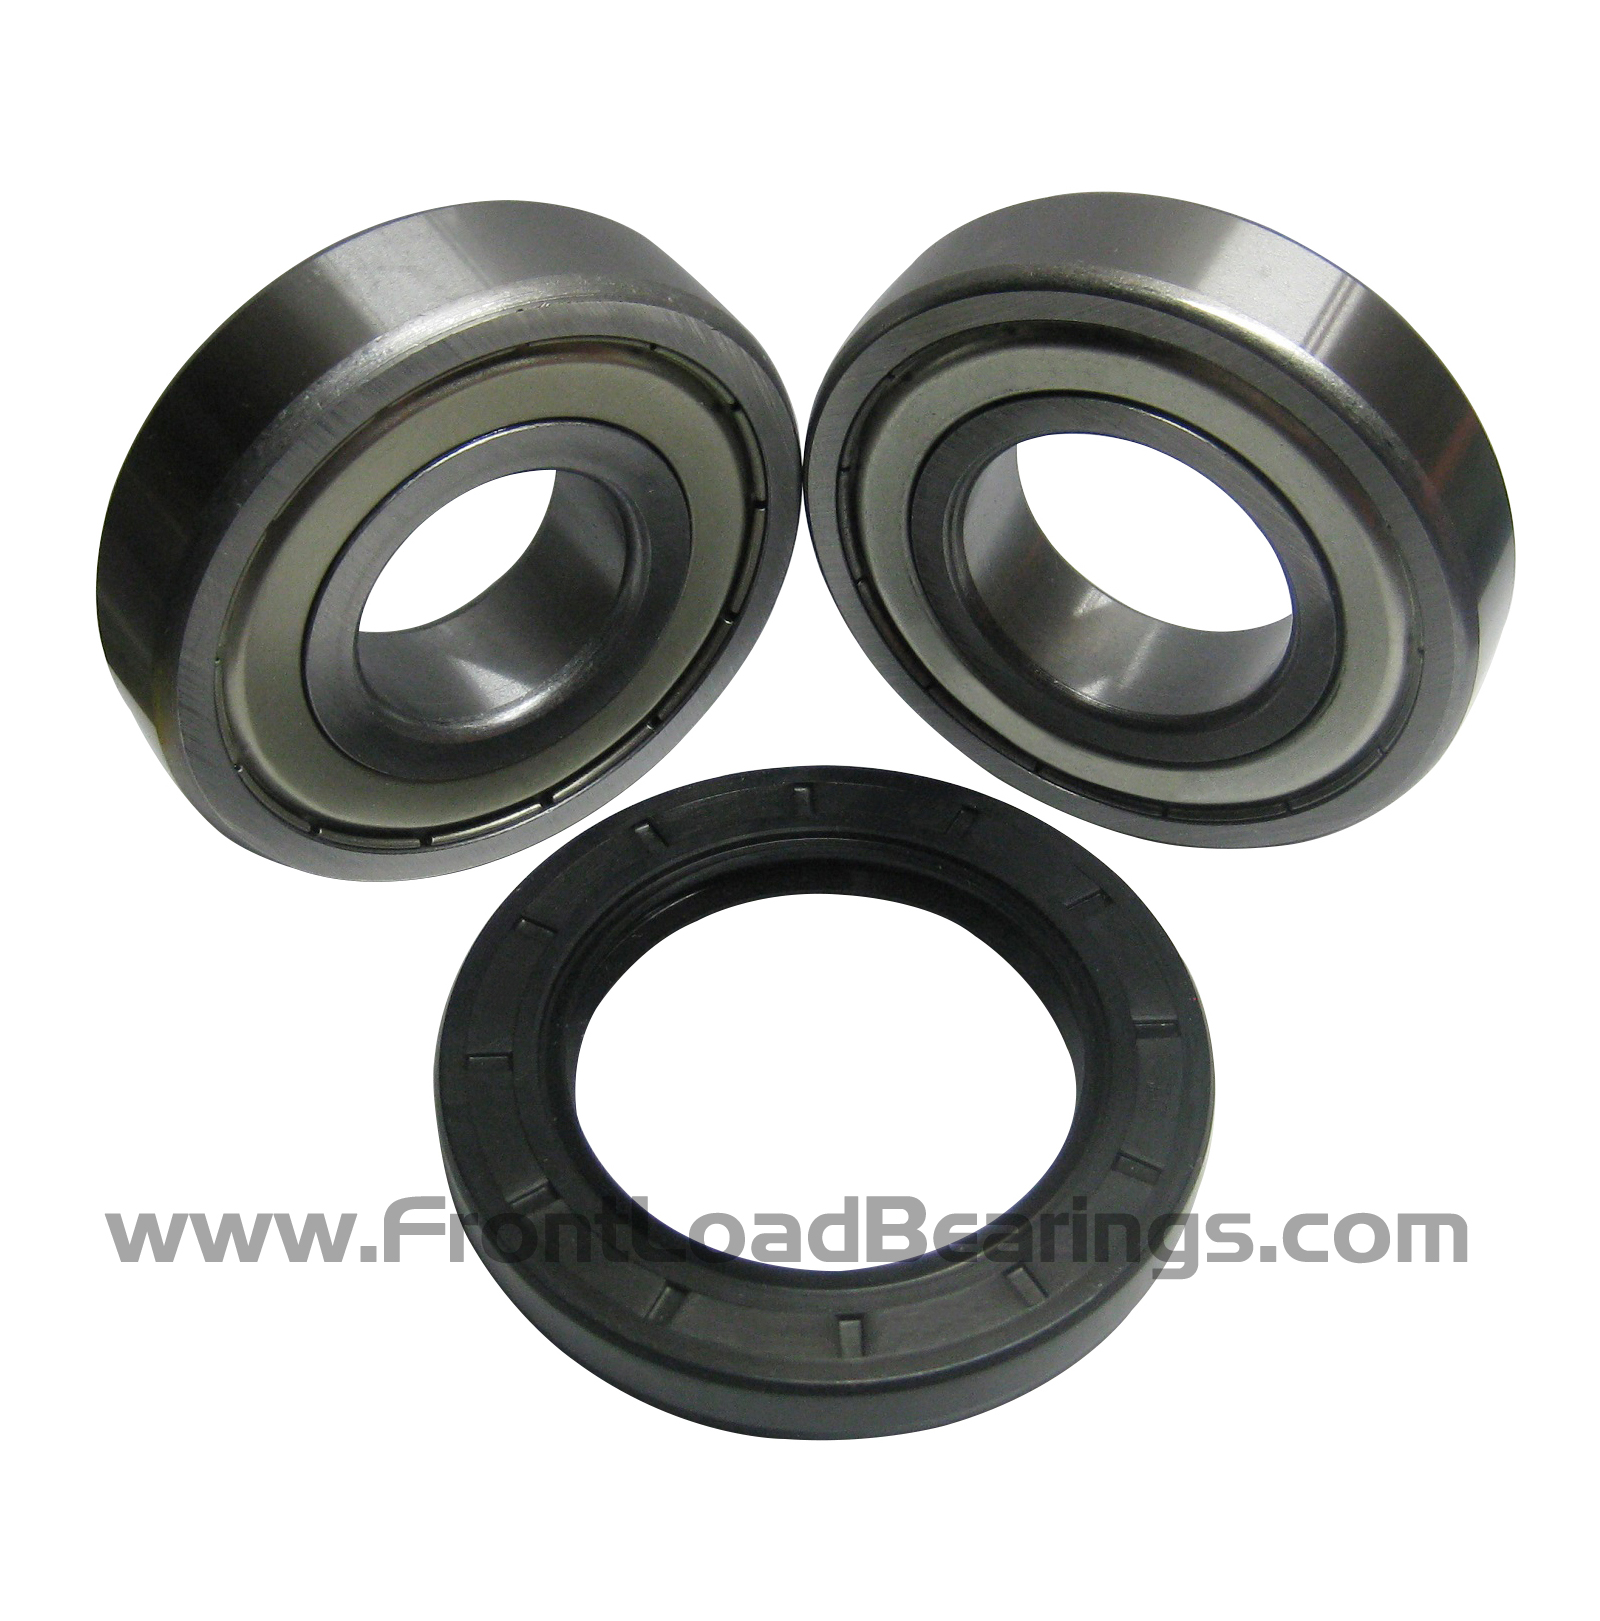 W10290562 High Quality Front Load Amana Washer Tub Bearing